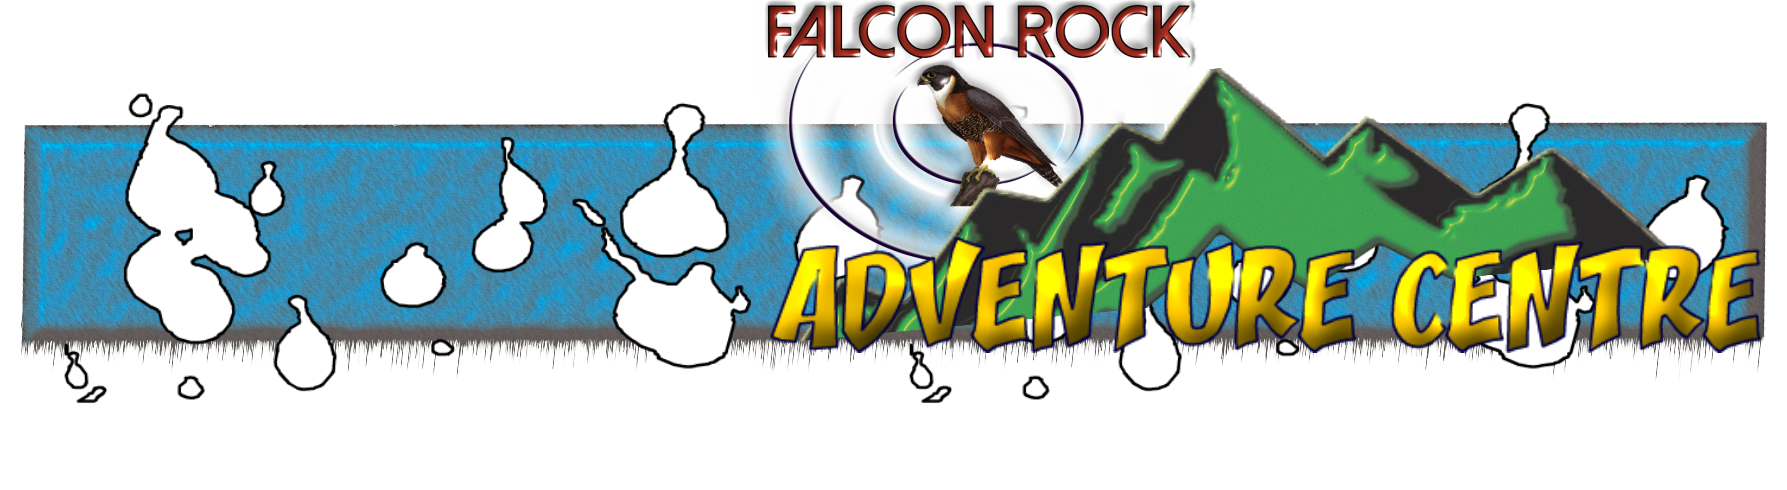 Falcon Rock Adventure Centre